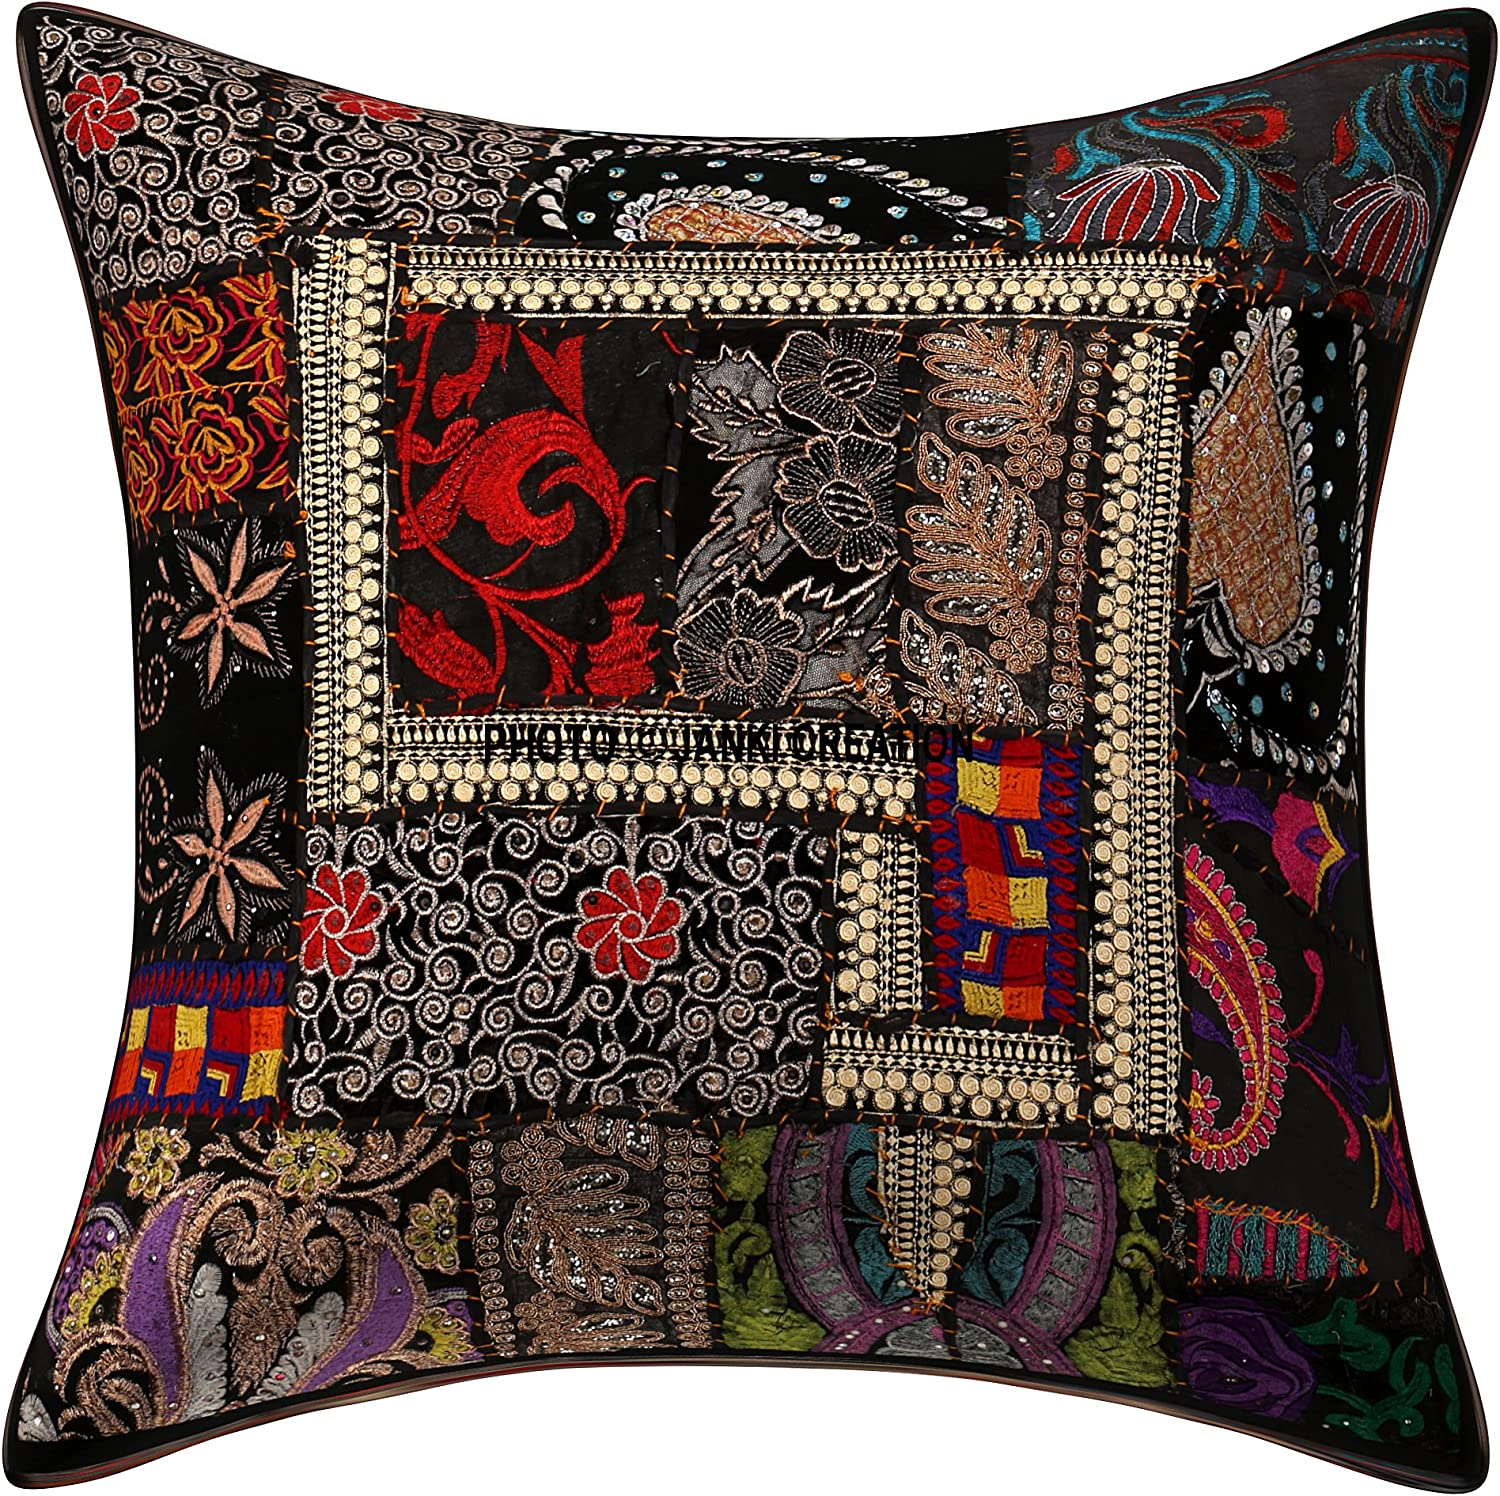 Indian Red Paisley Cushion Cover Cotton Square Throw Pillow Cases Decor